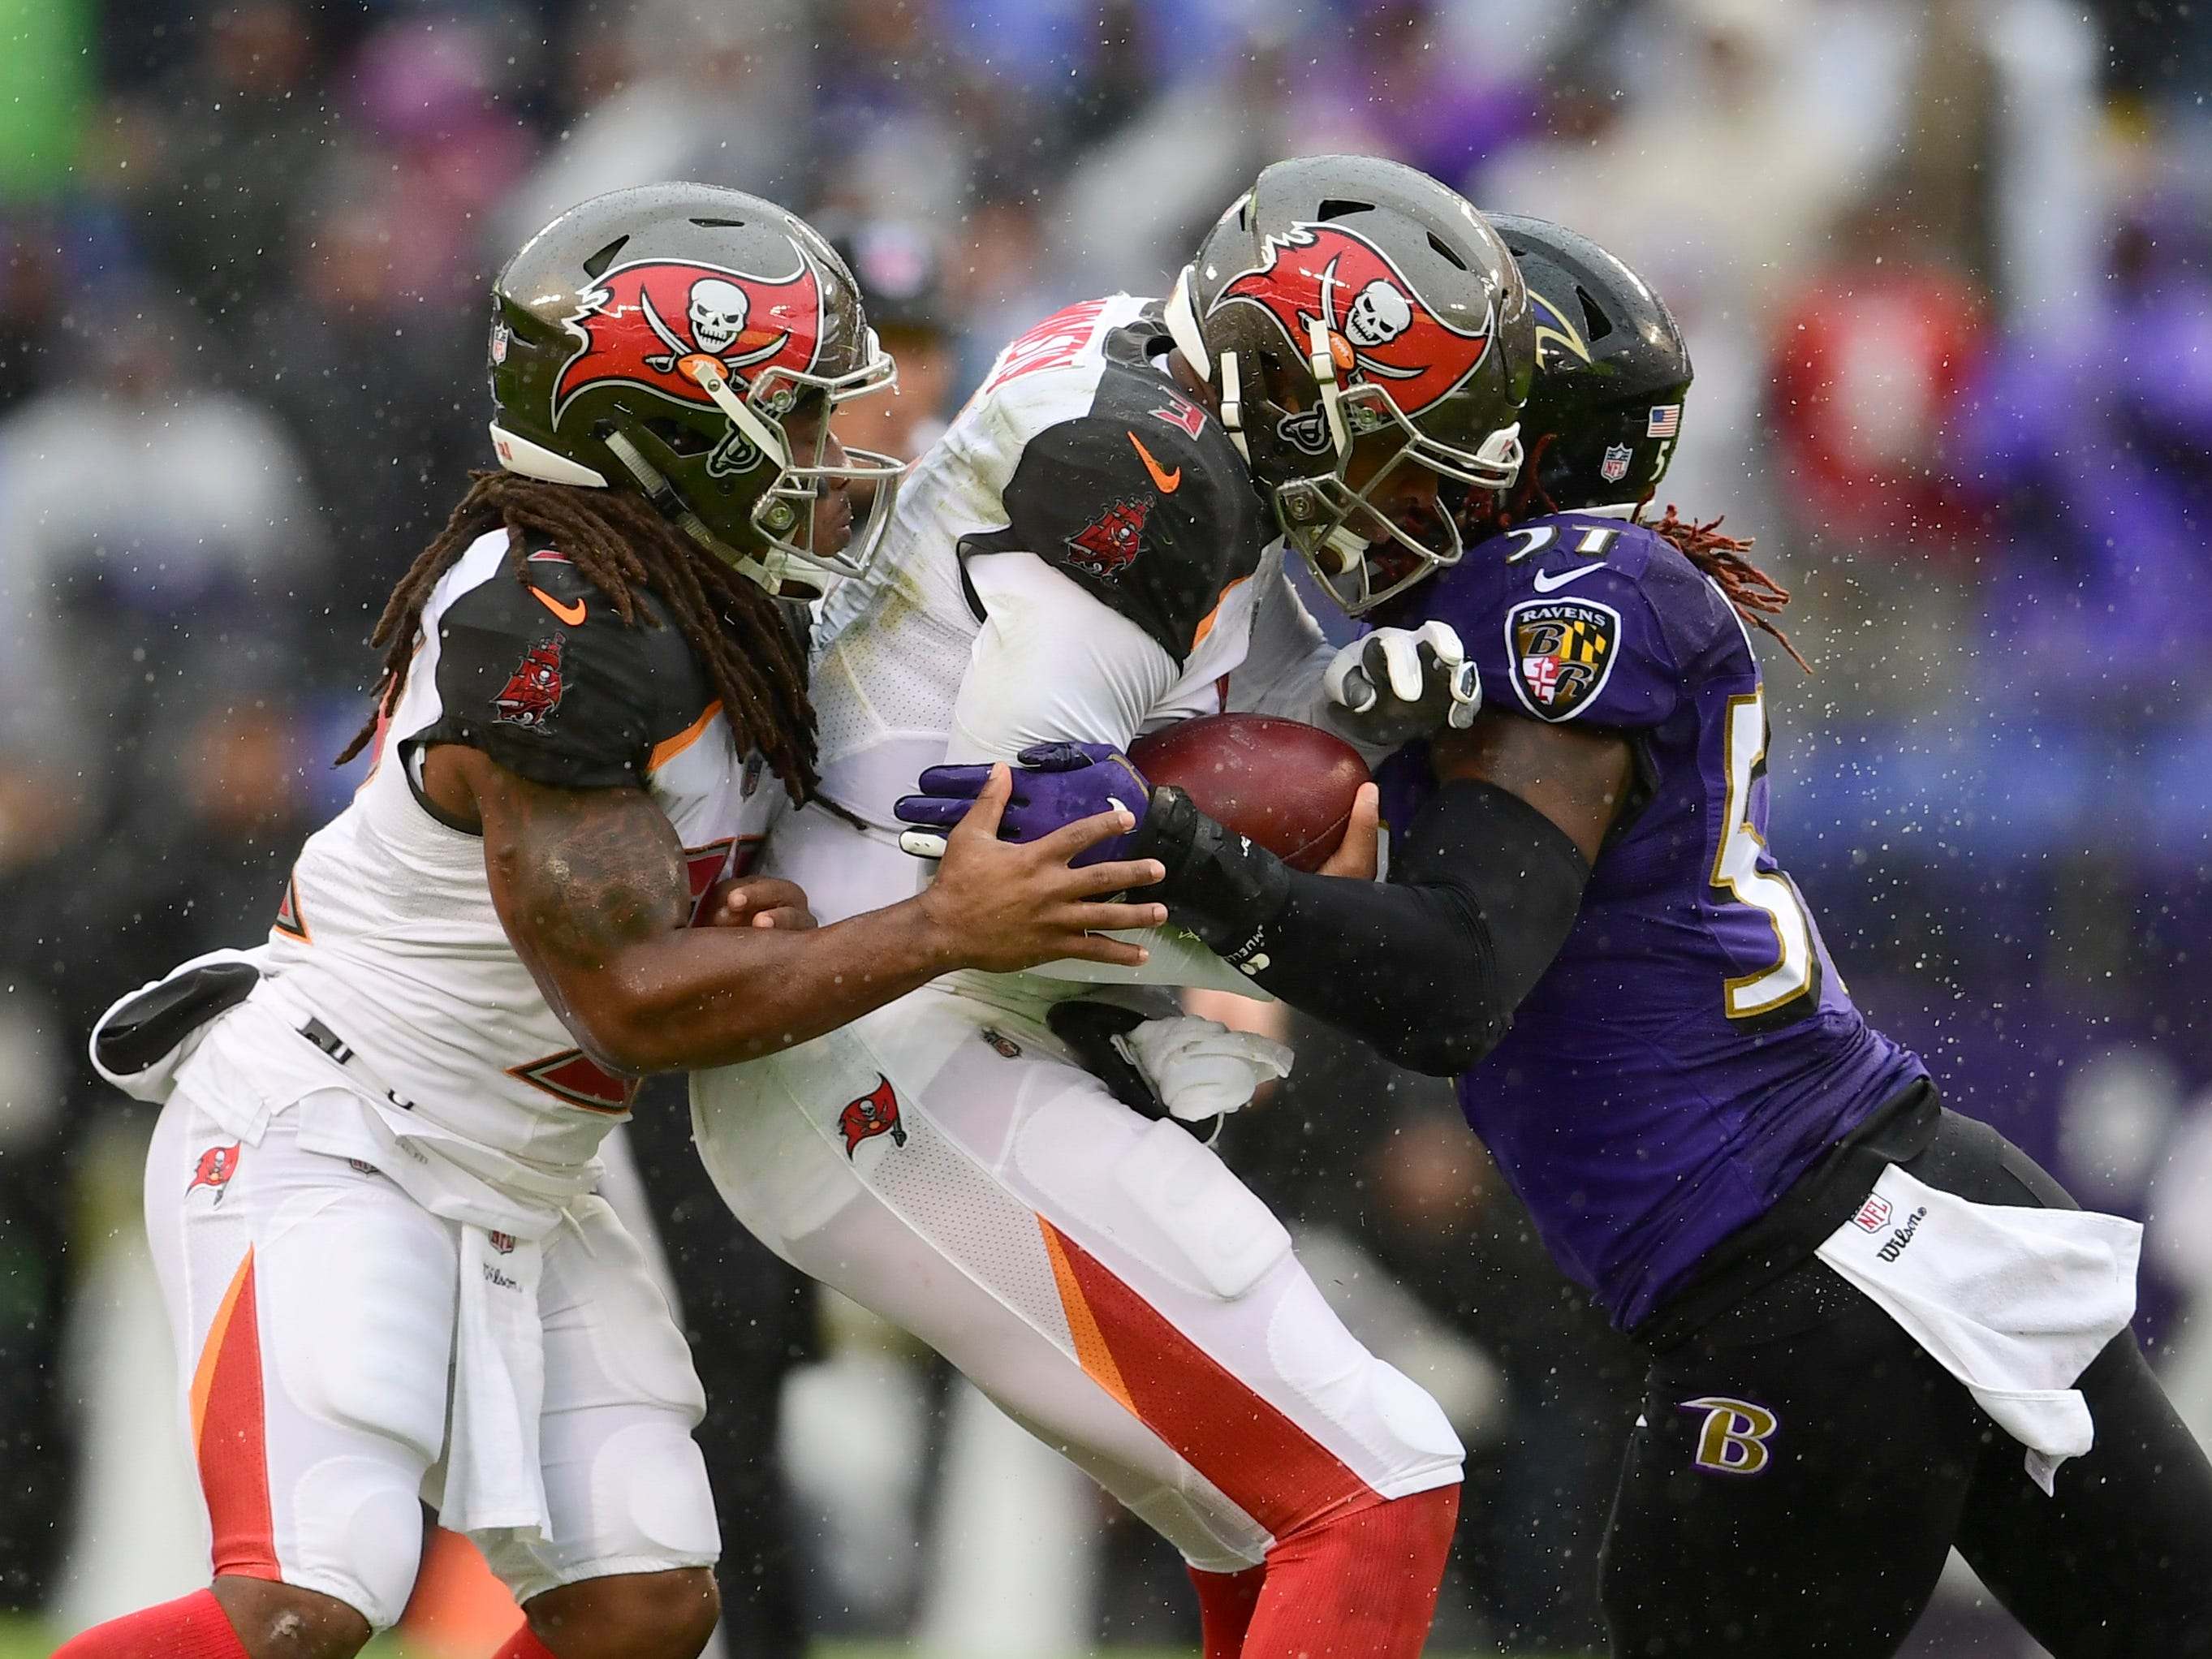 Week 15: Baltimore Ravens linebacker C.J. Mosley sacks Tampa Bay Buccaneers quarterback Jameis Winston  in the rain at M&T Bank Stadium. The Ravens won the game, 20-12.